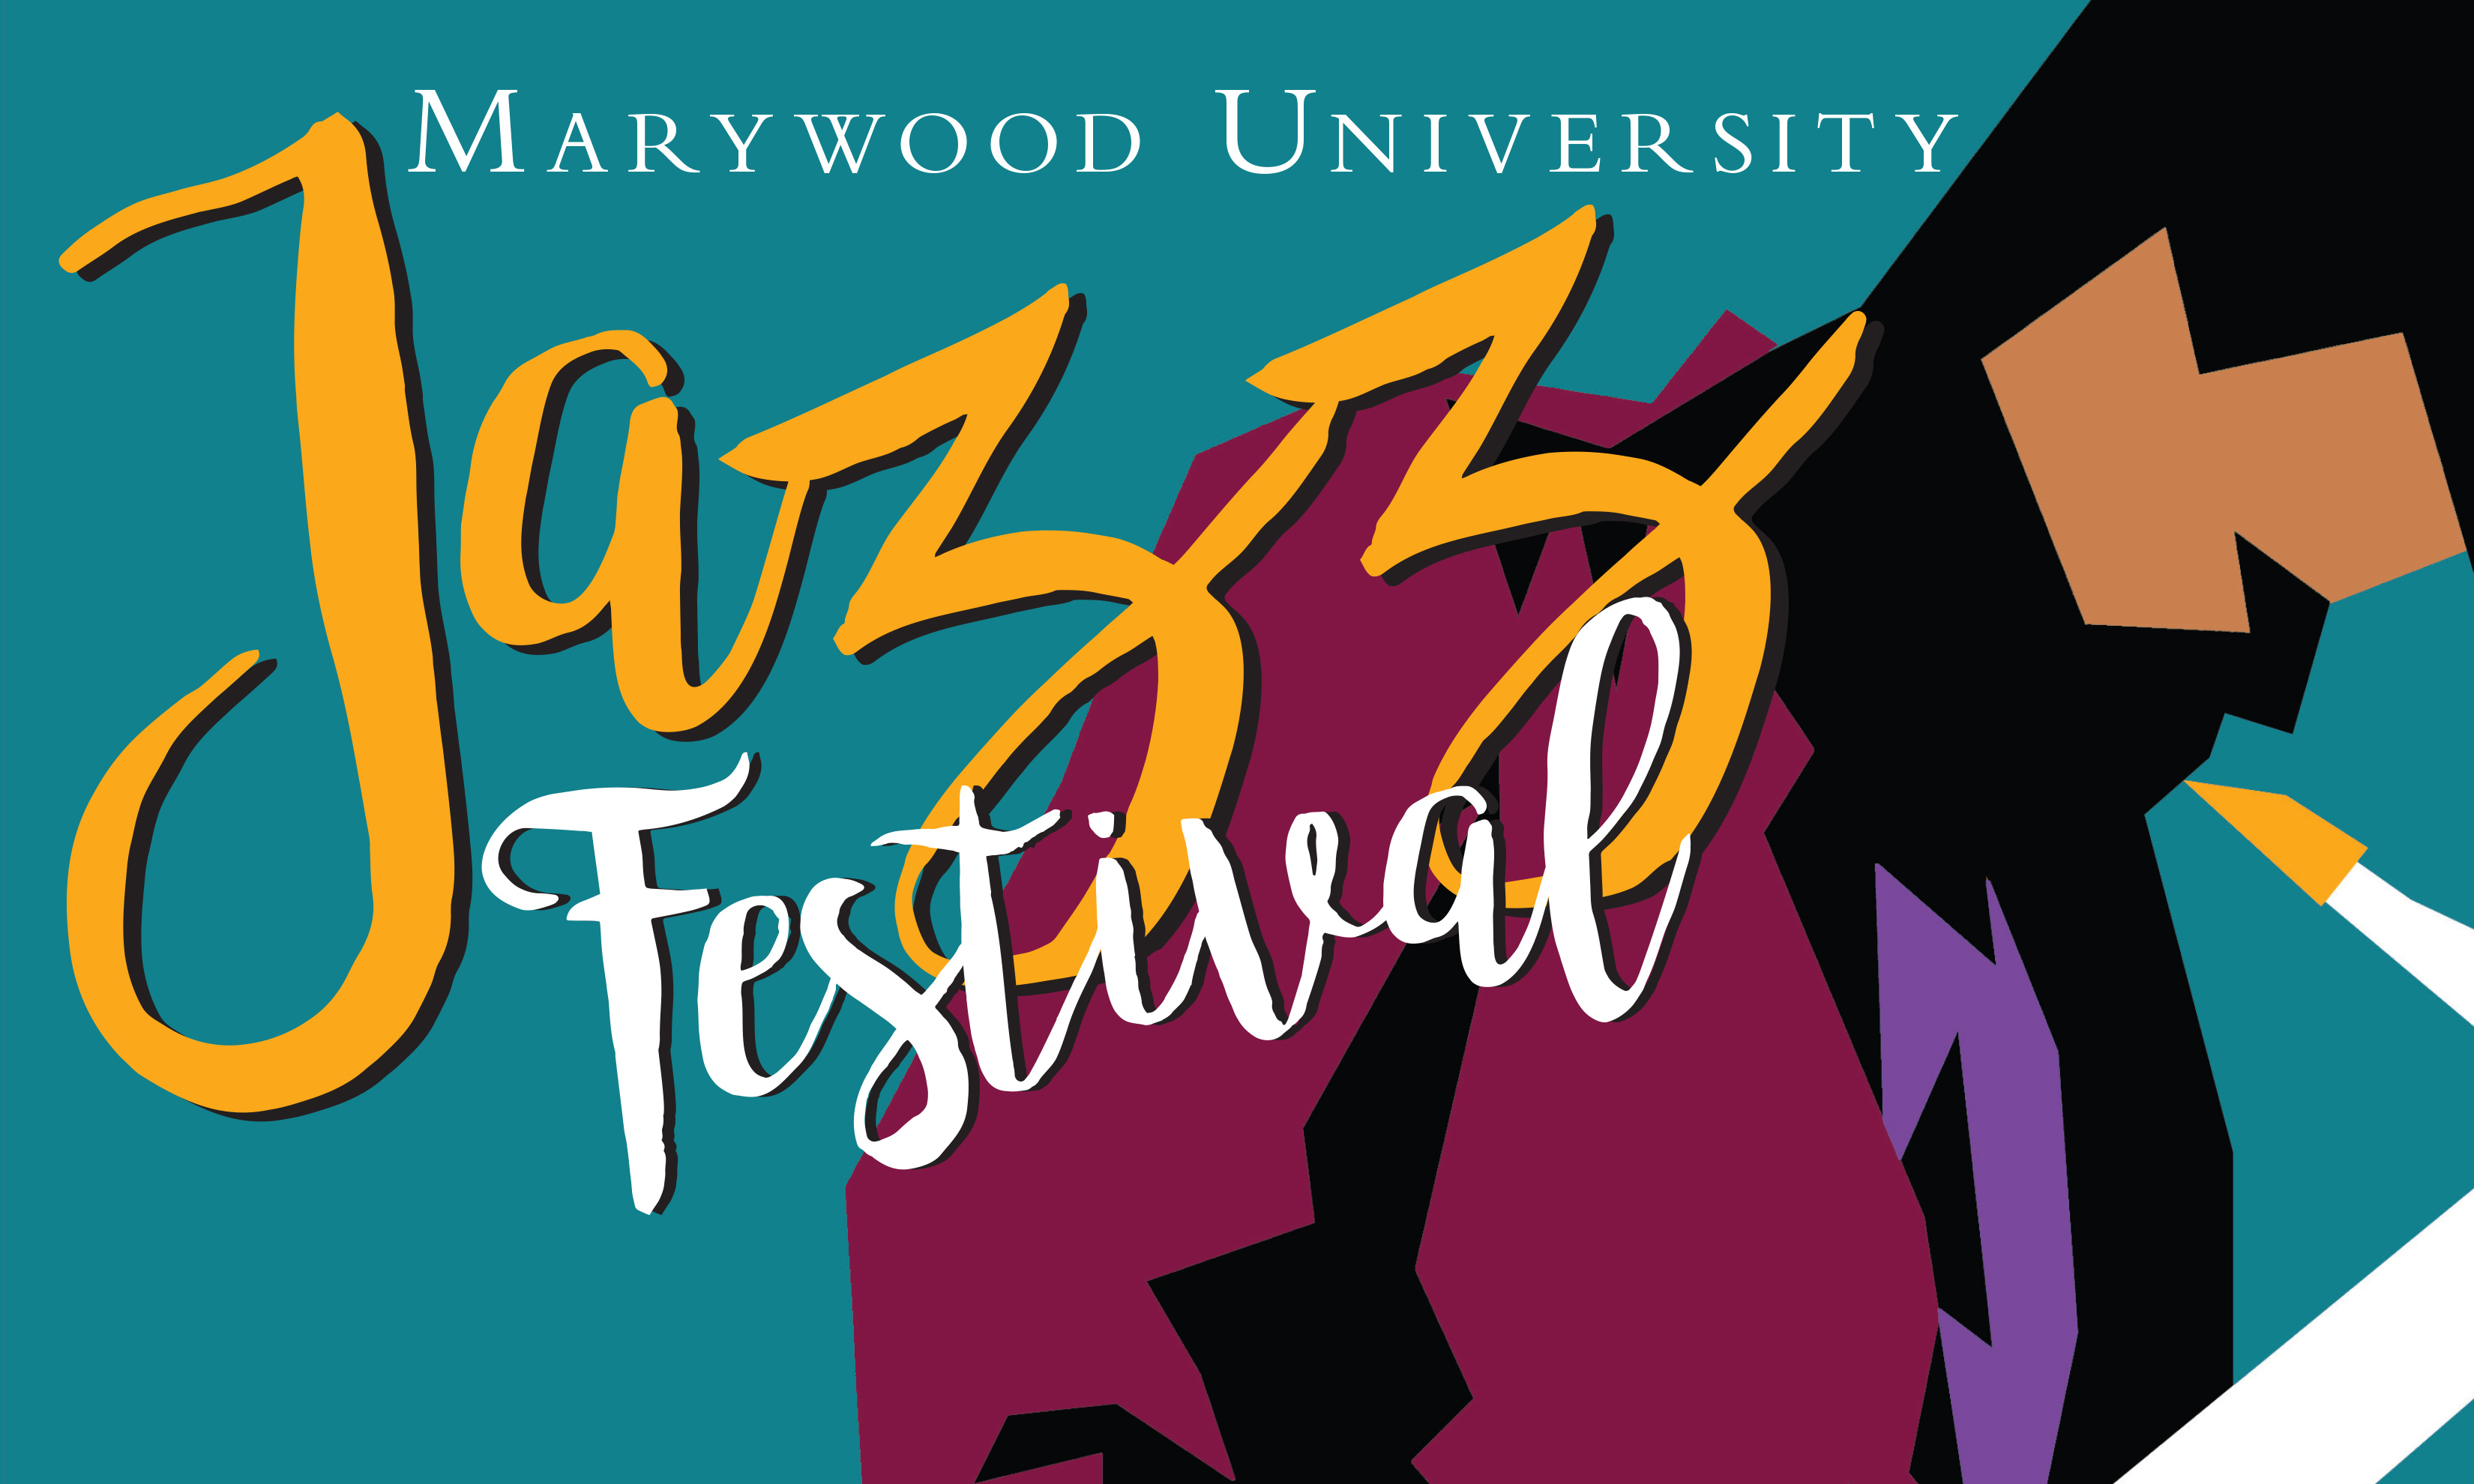 Marywood University Jazz Festival